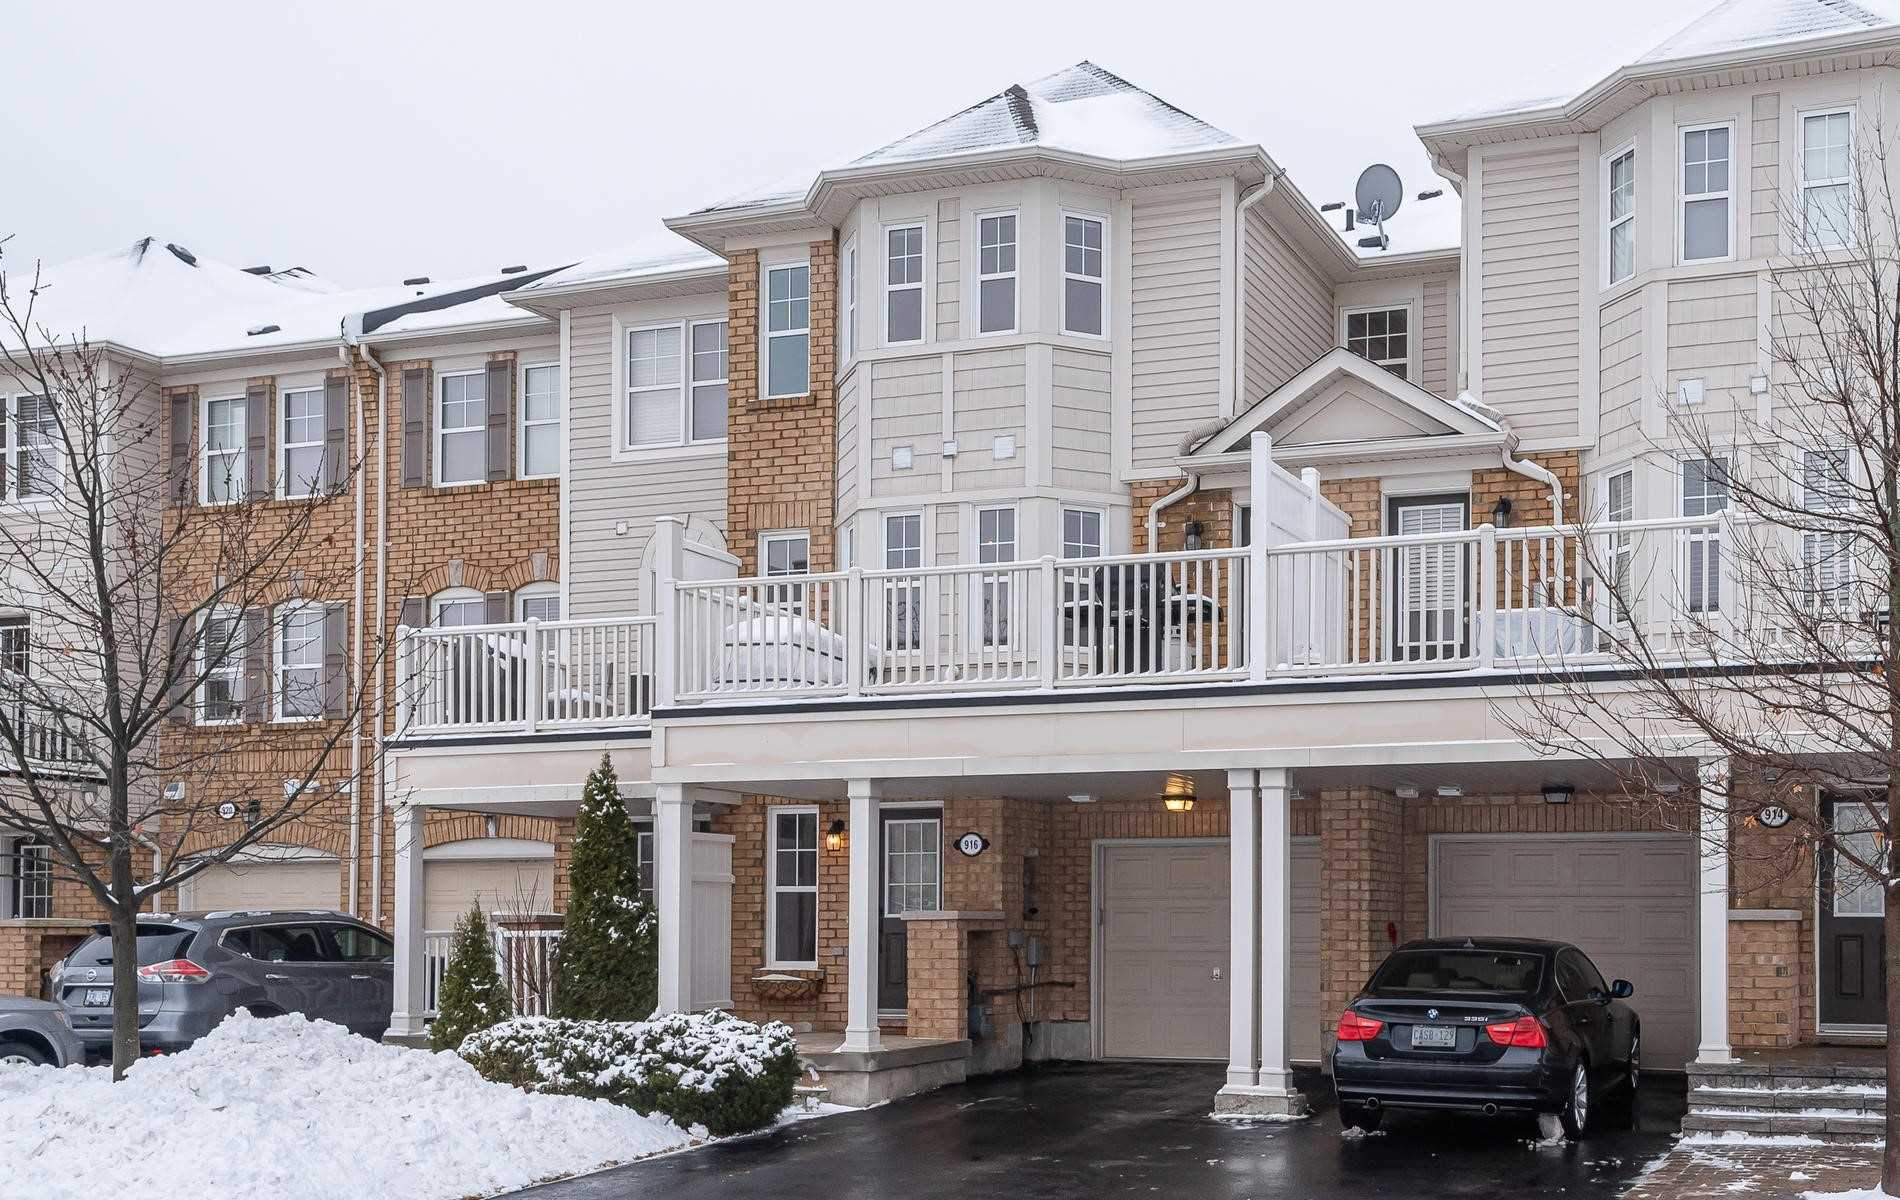 pictures of house for sale MLS: W4696061 located at 916 Ambroise Cres, Milton L9T0M2